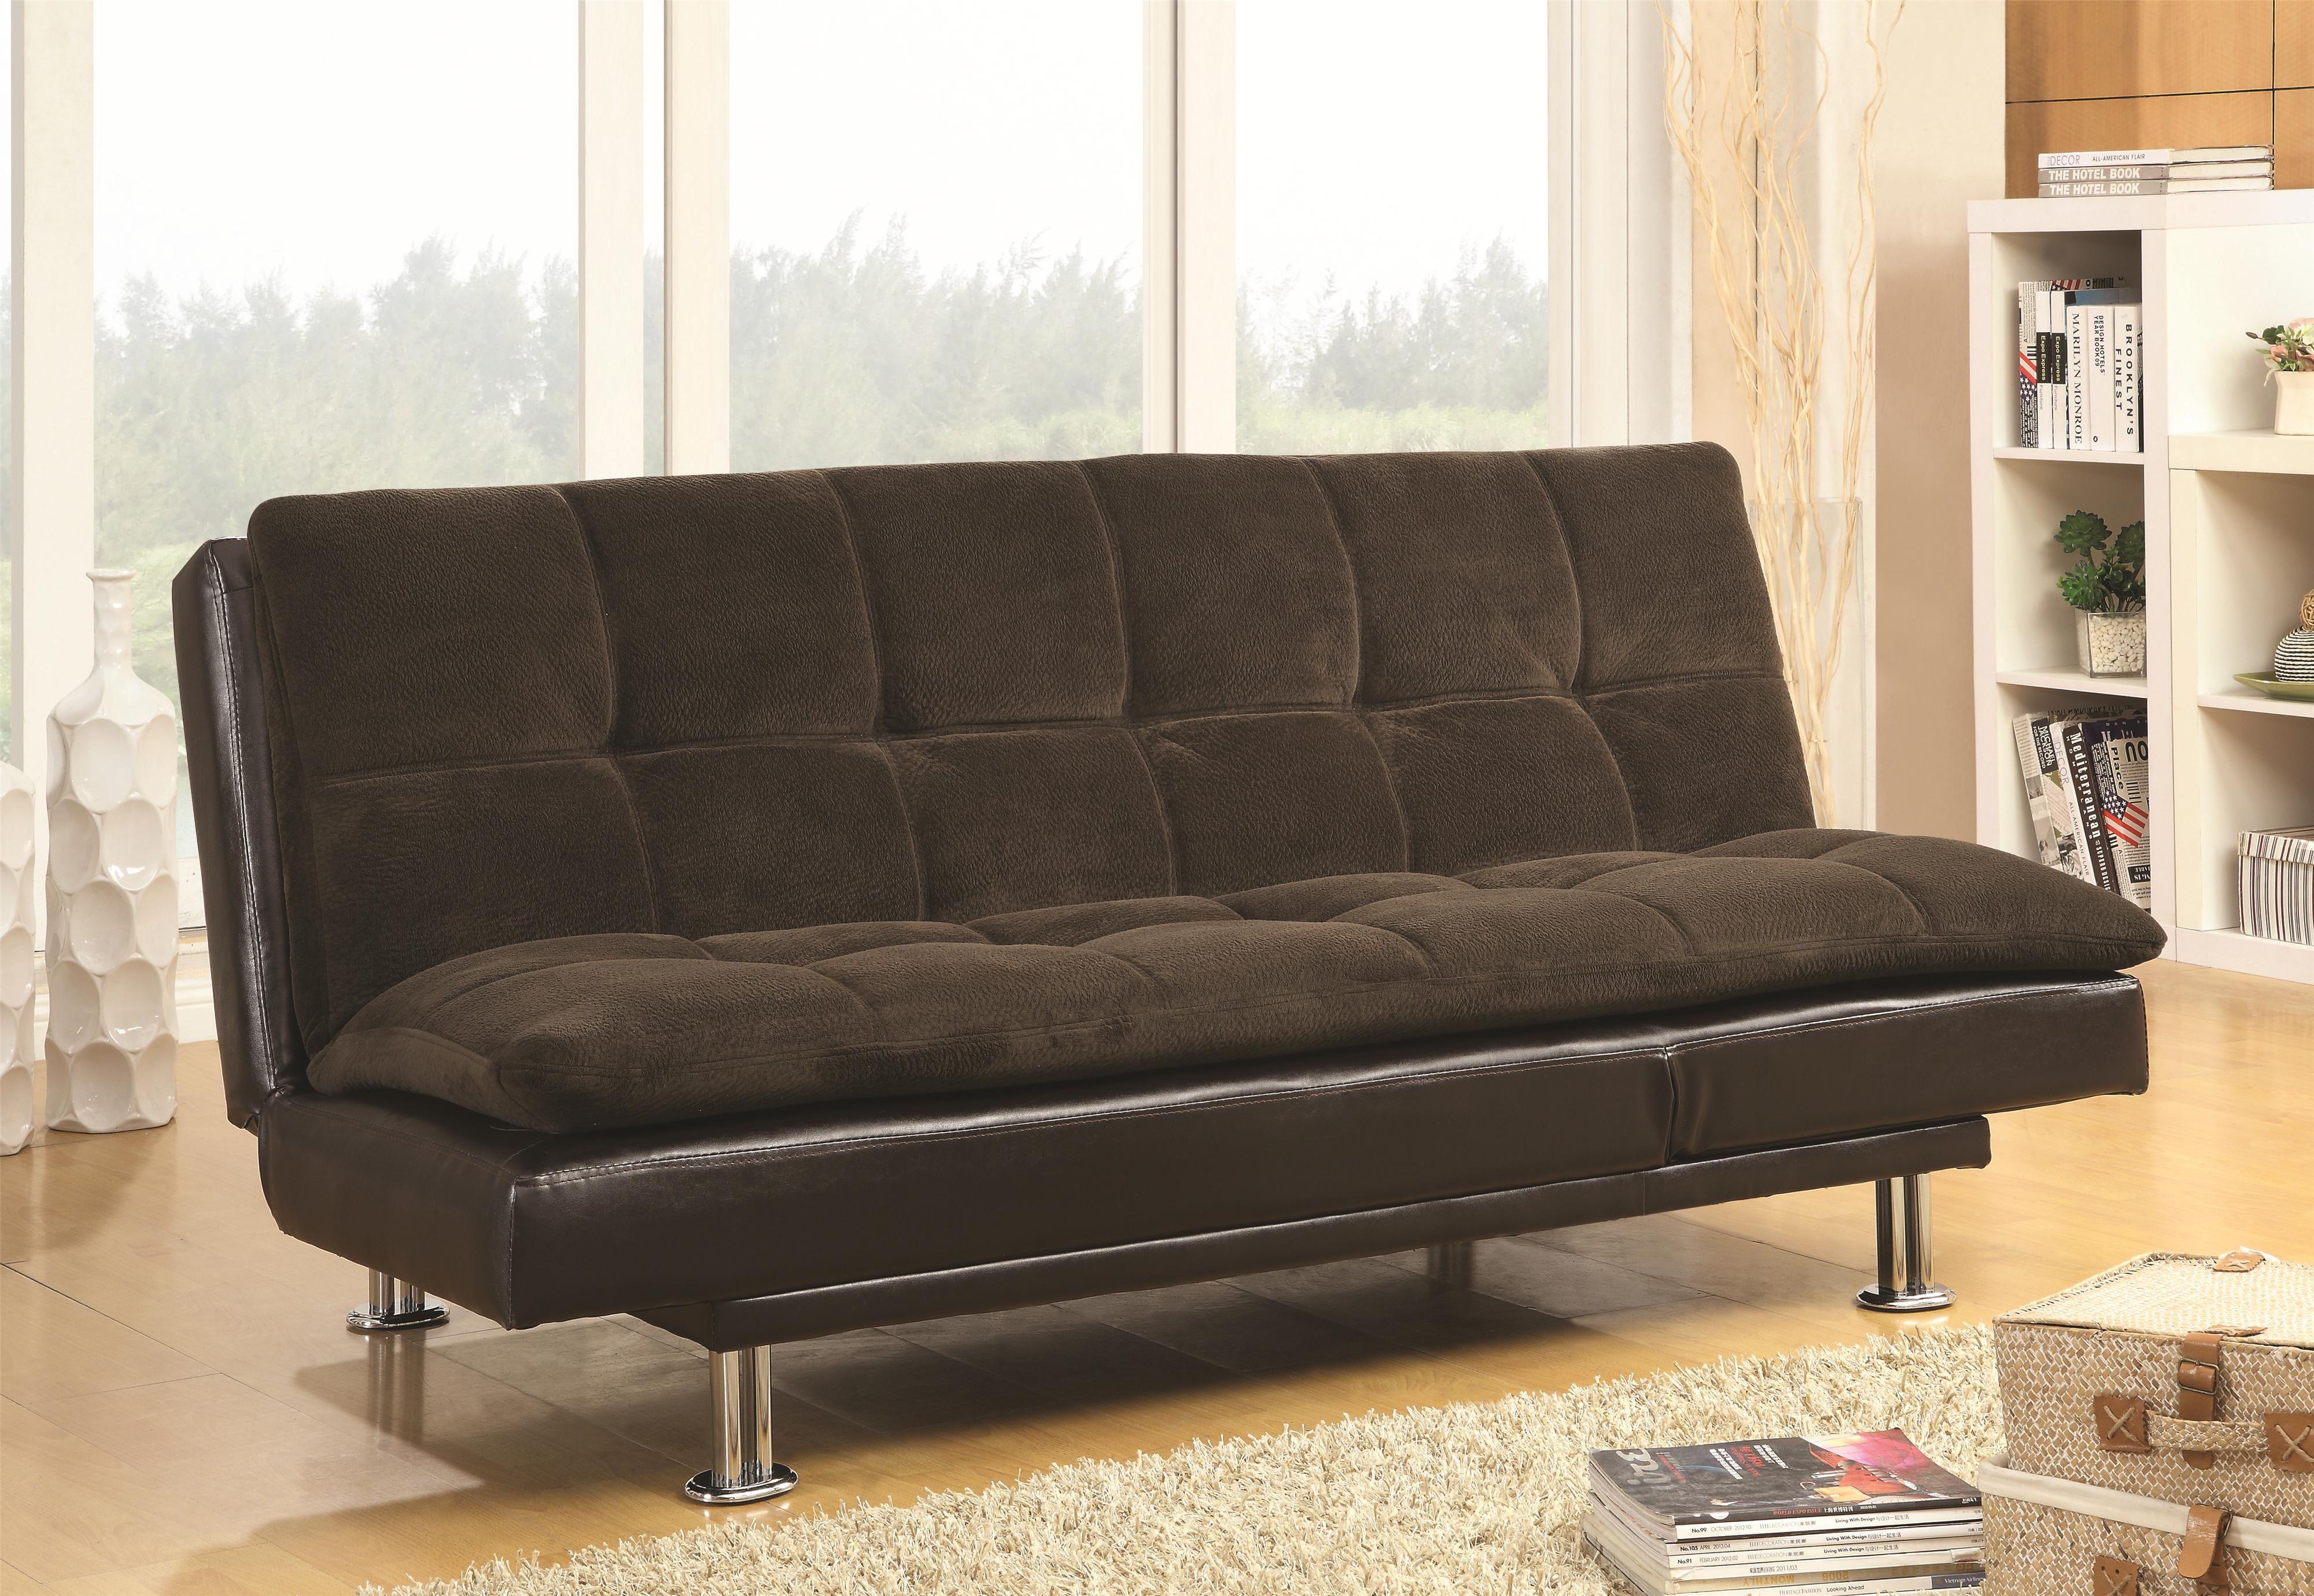 Millie sofa bed with chrome legs and casual style